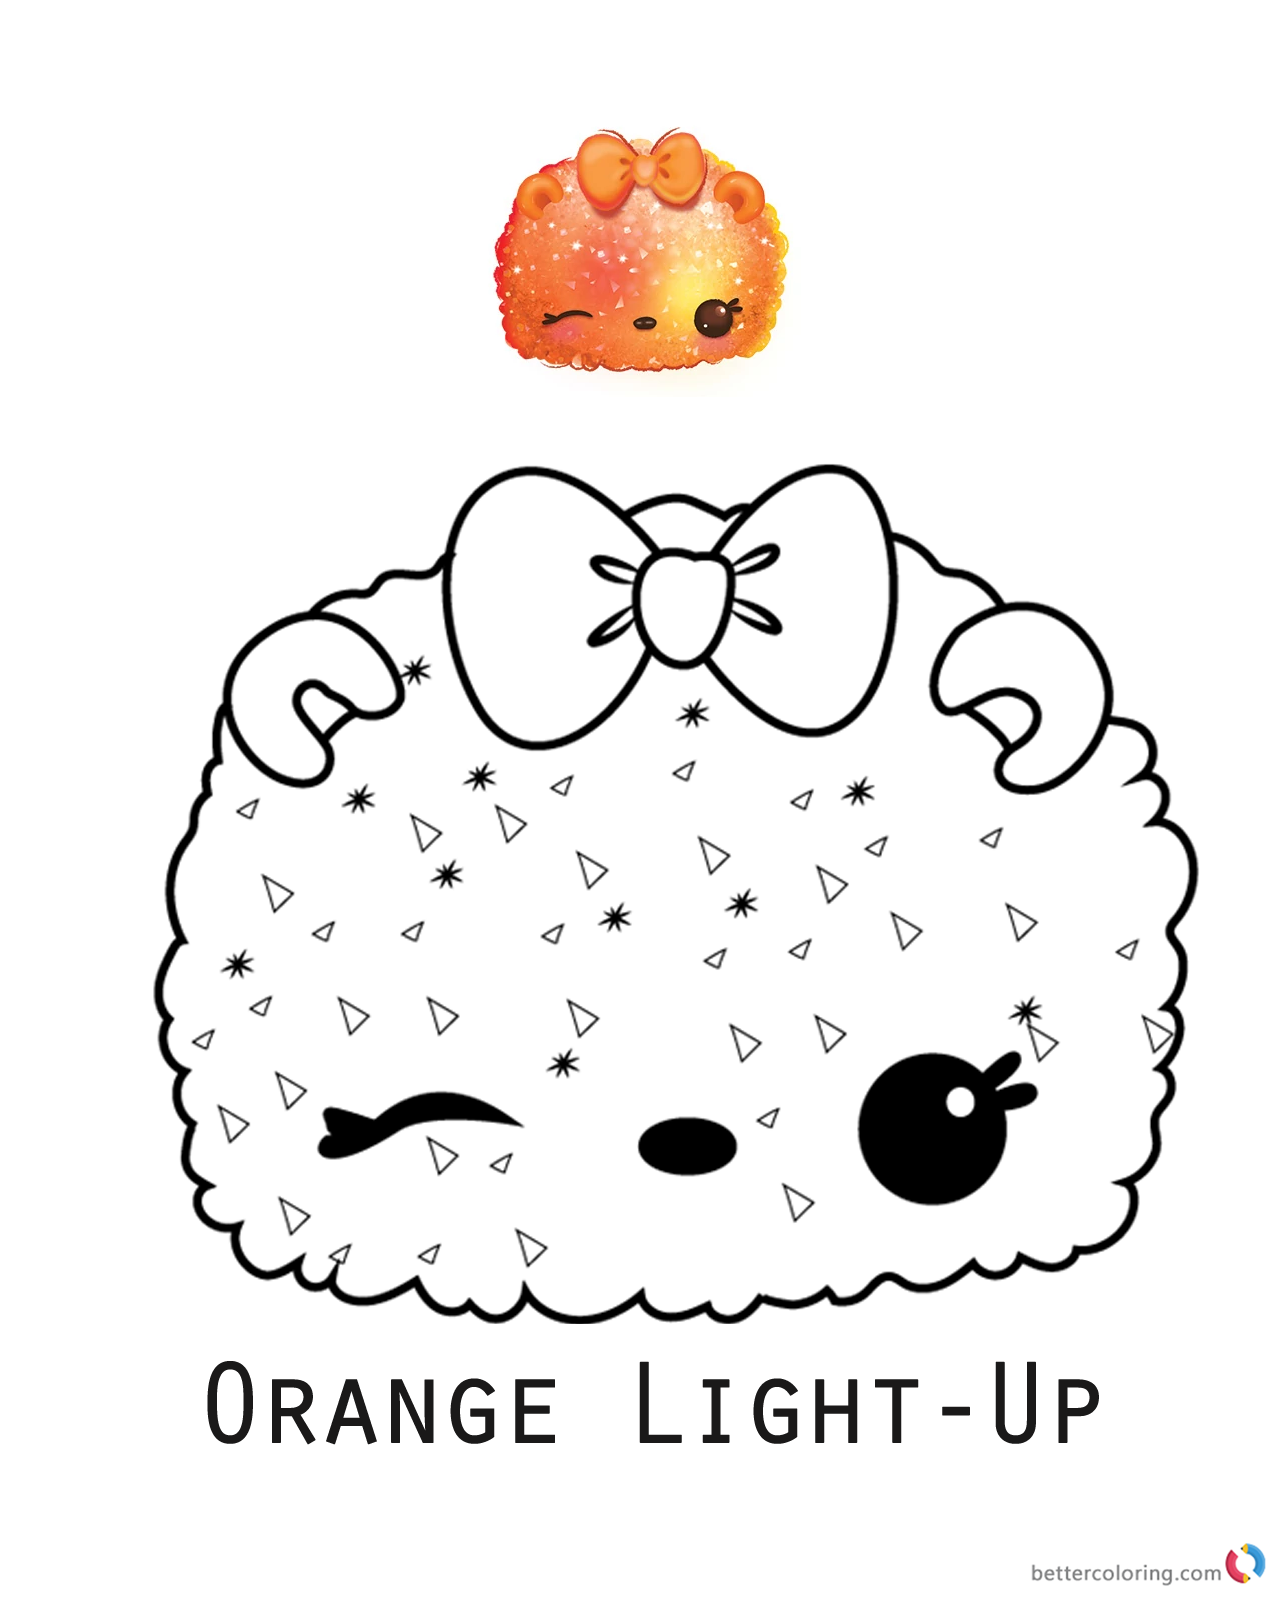 Orange Light-Up from Num Noms coloring pages printable